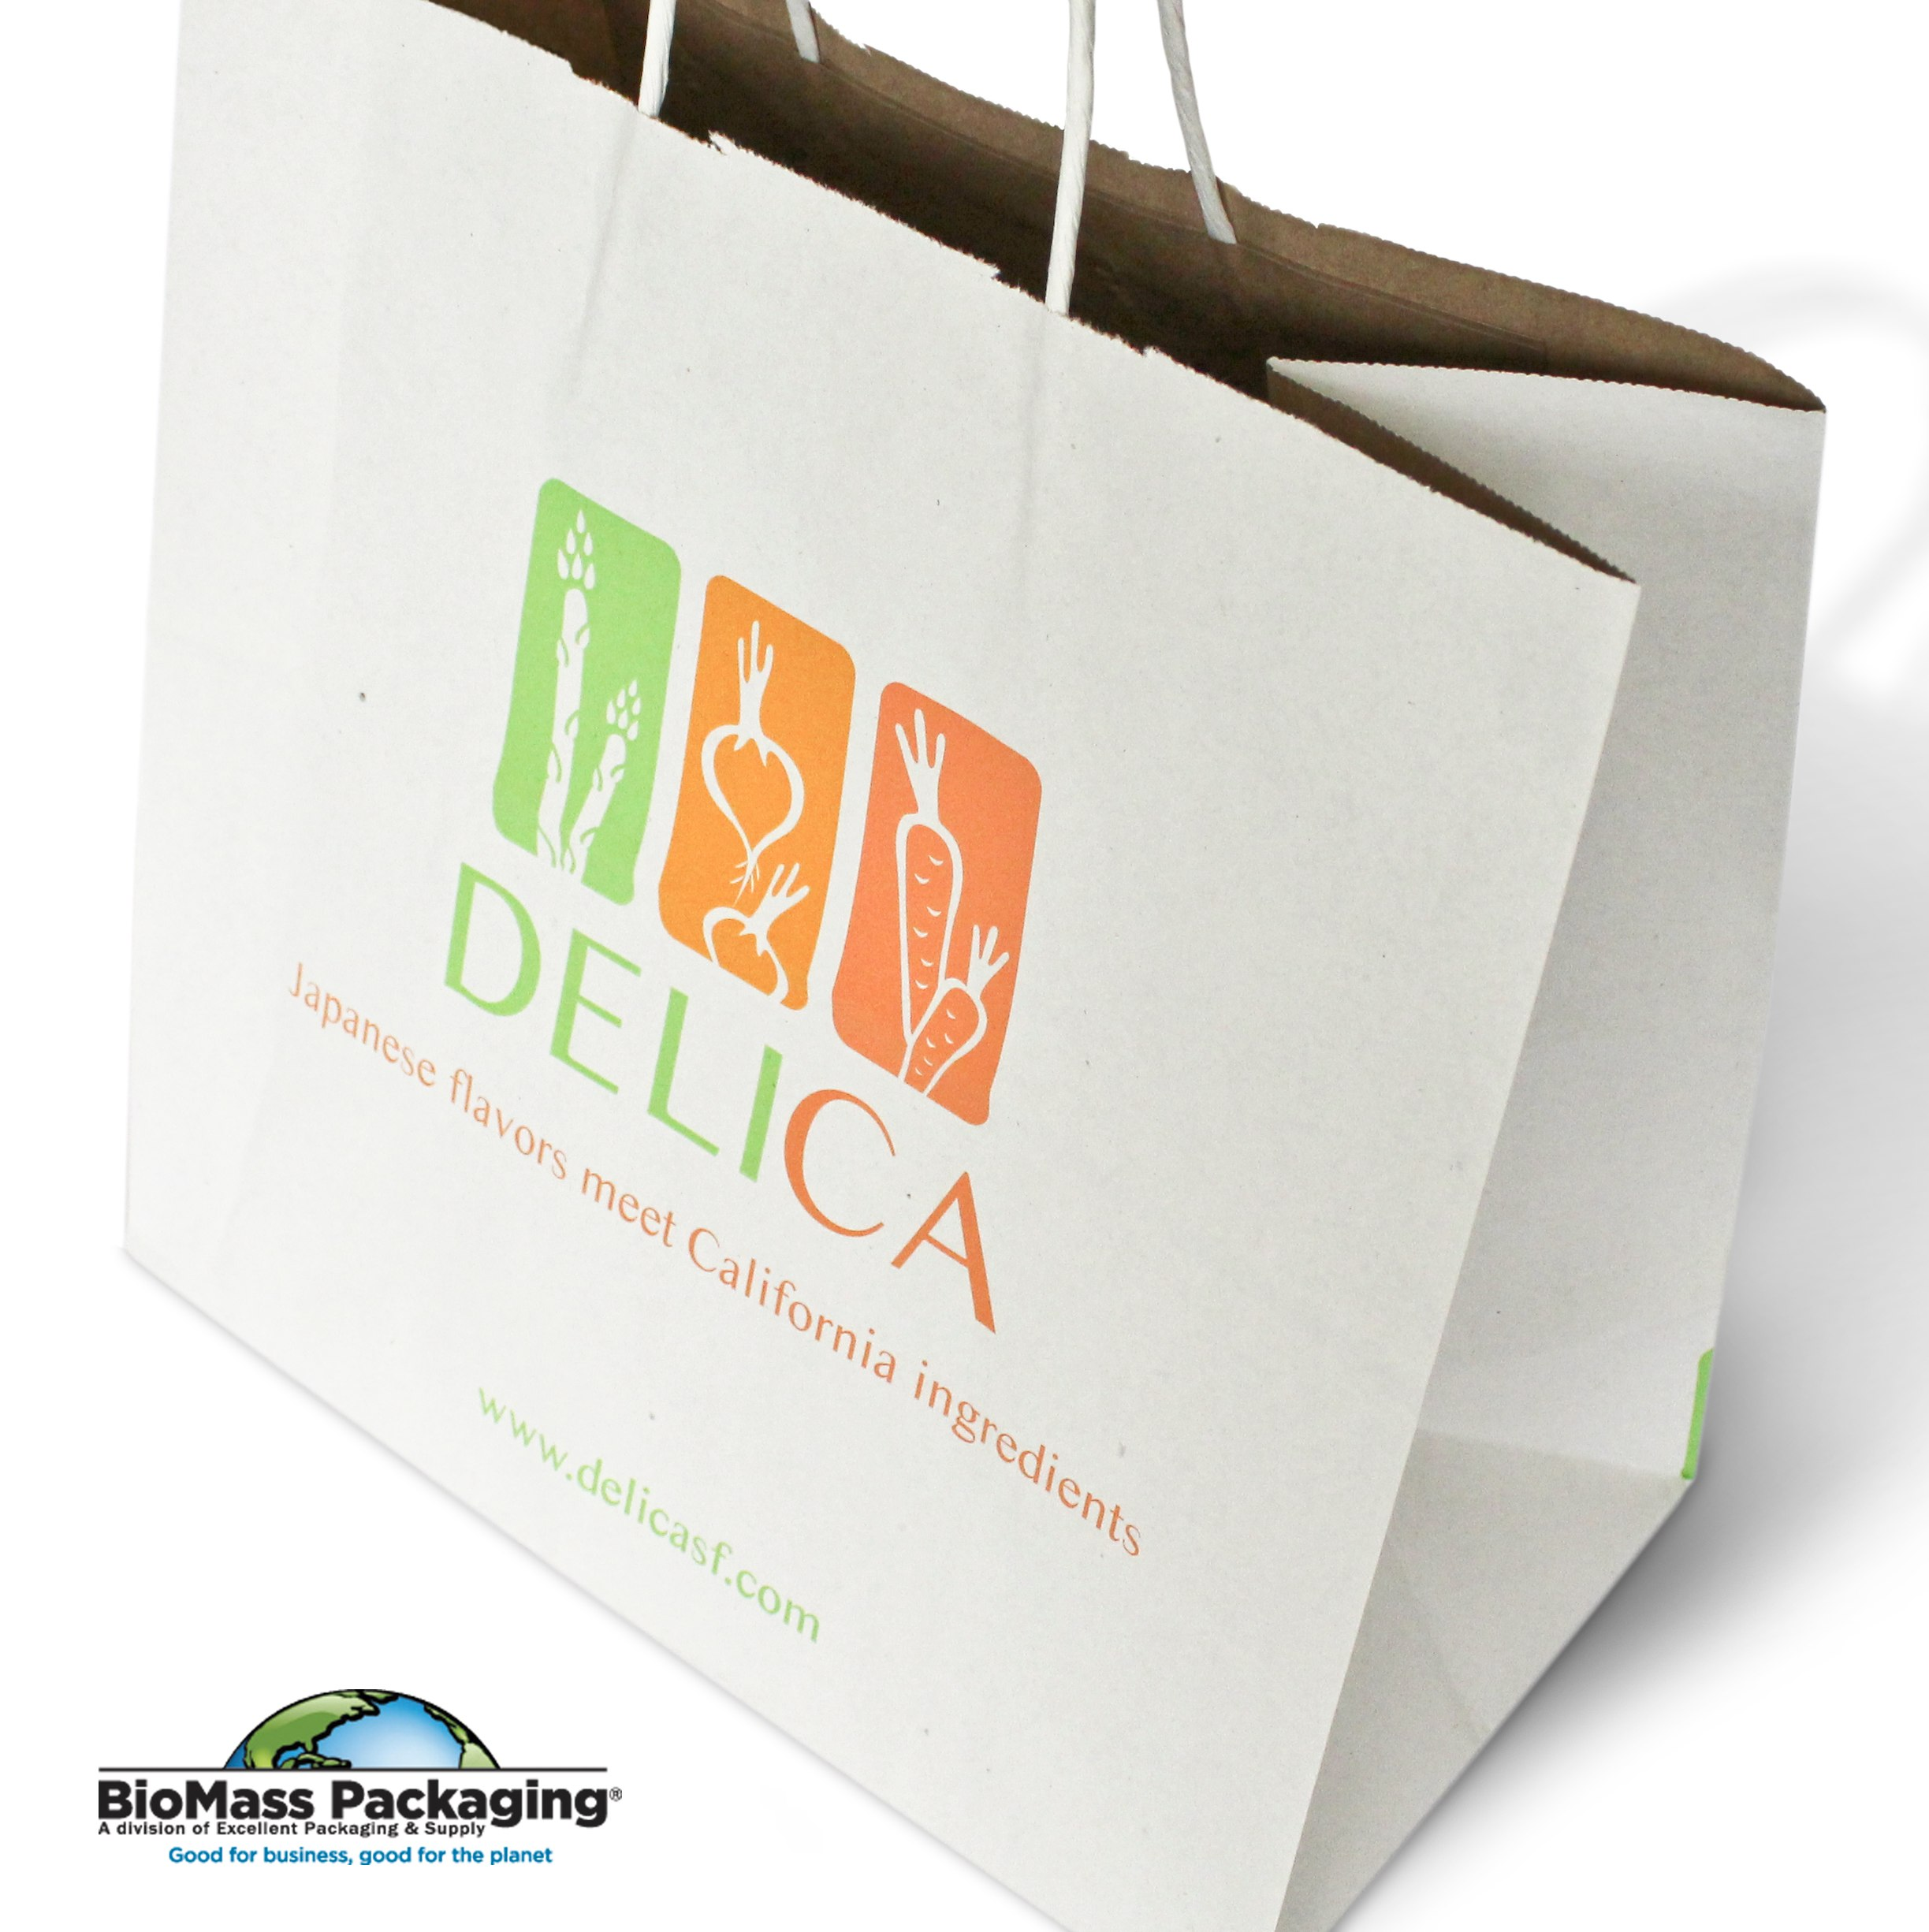 New 100%-Recycled, FSC-Certified Shopping Bags From Excellent ...